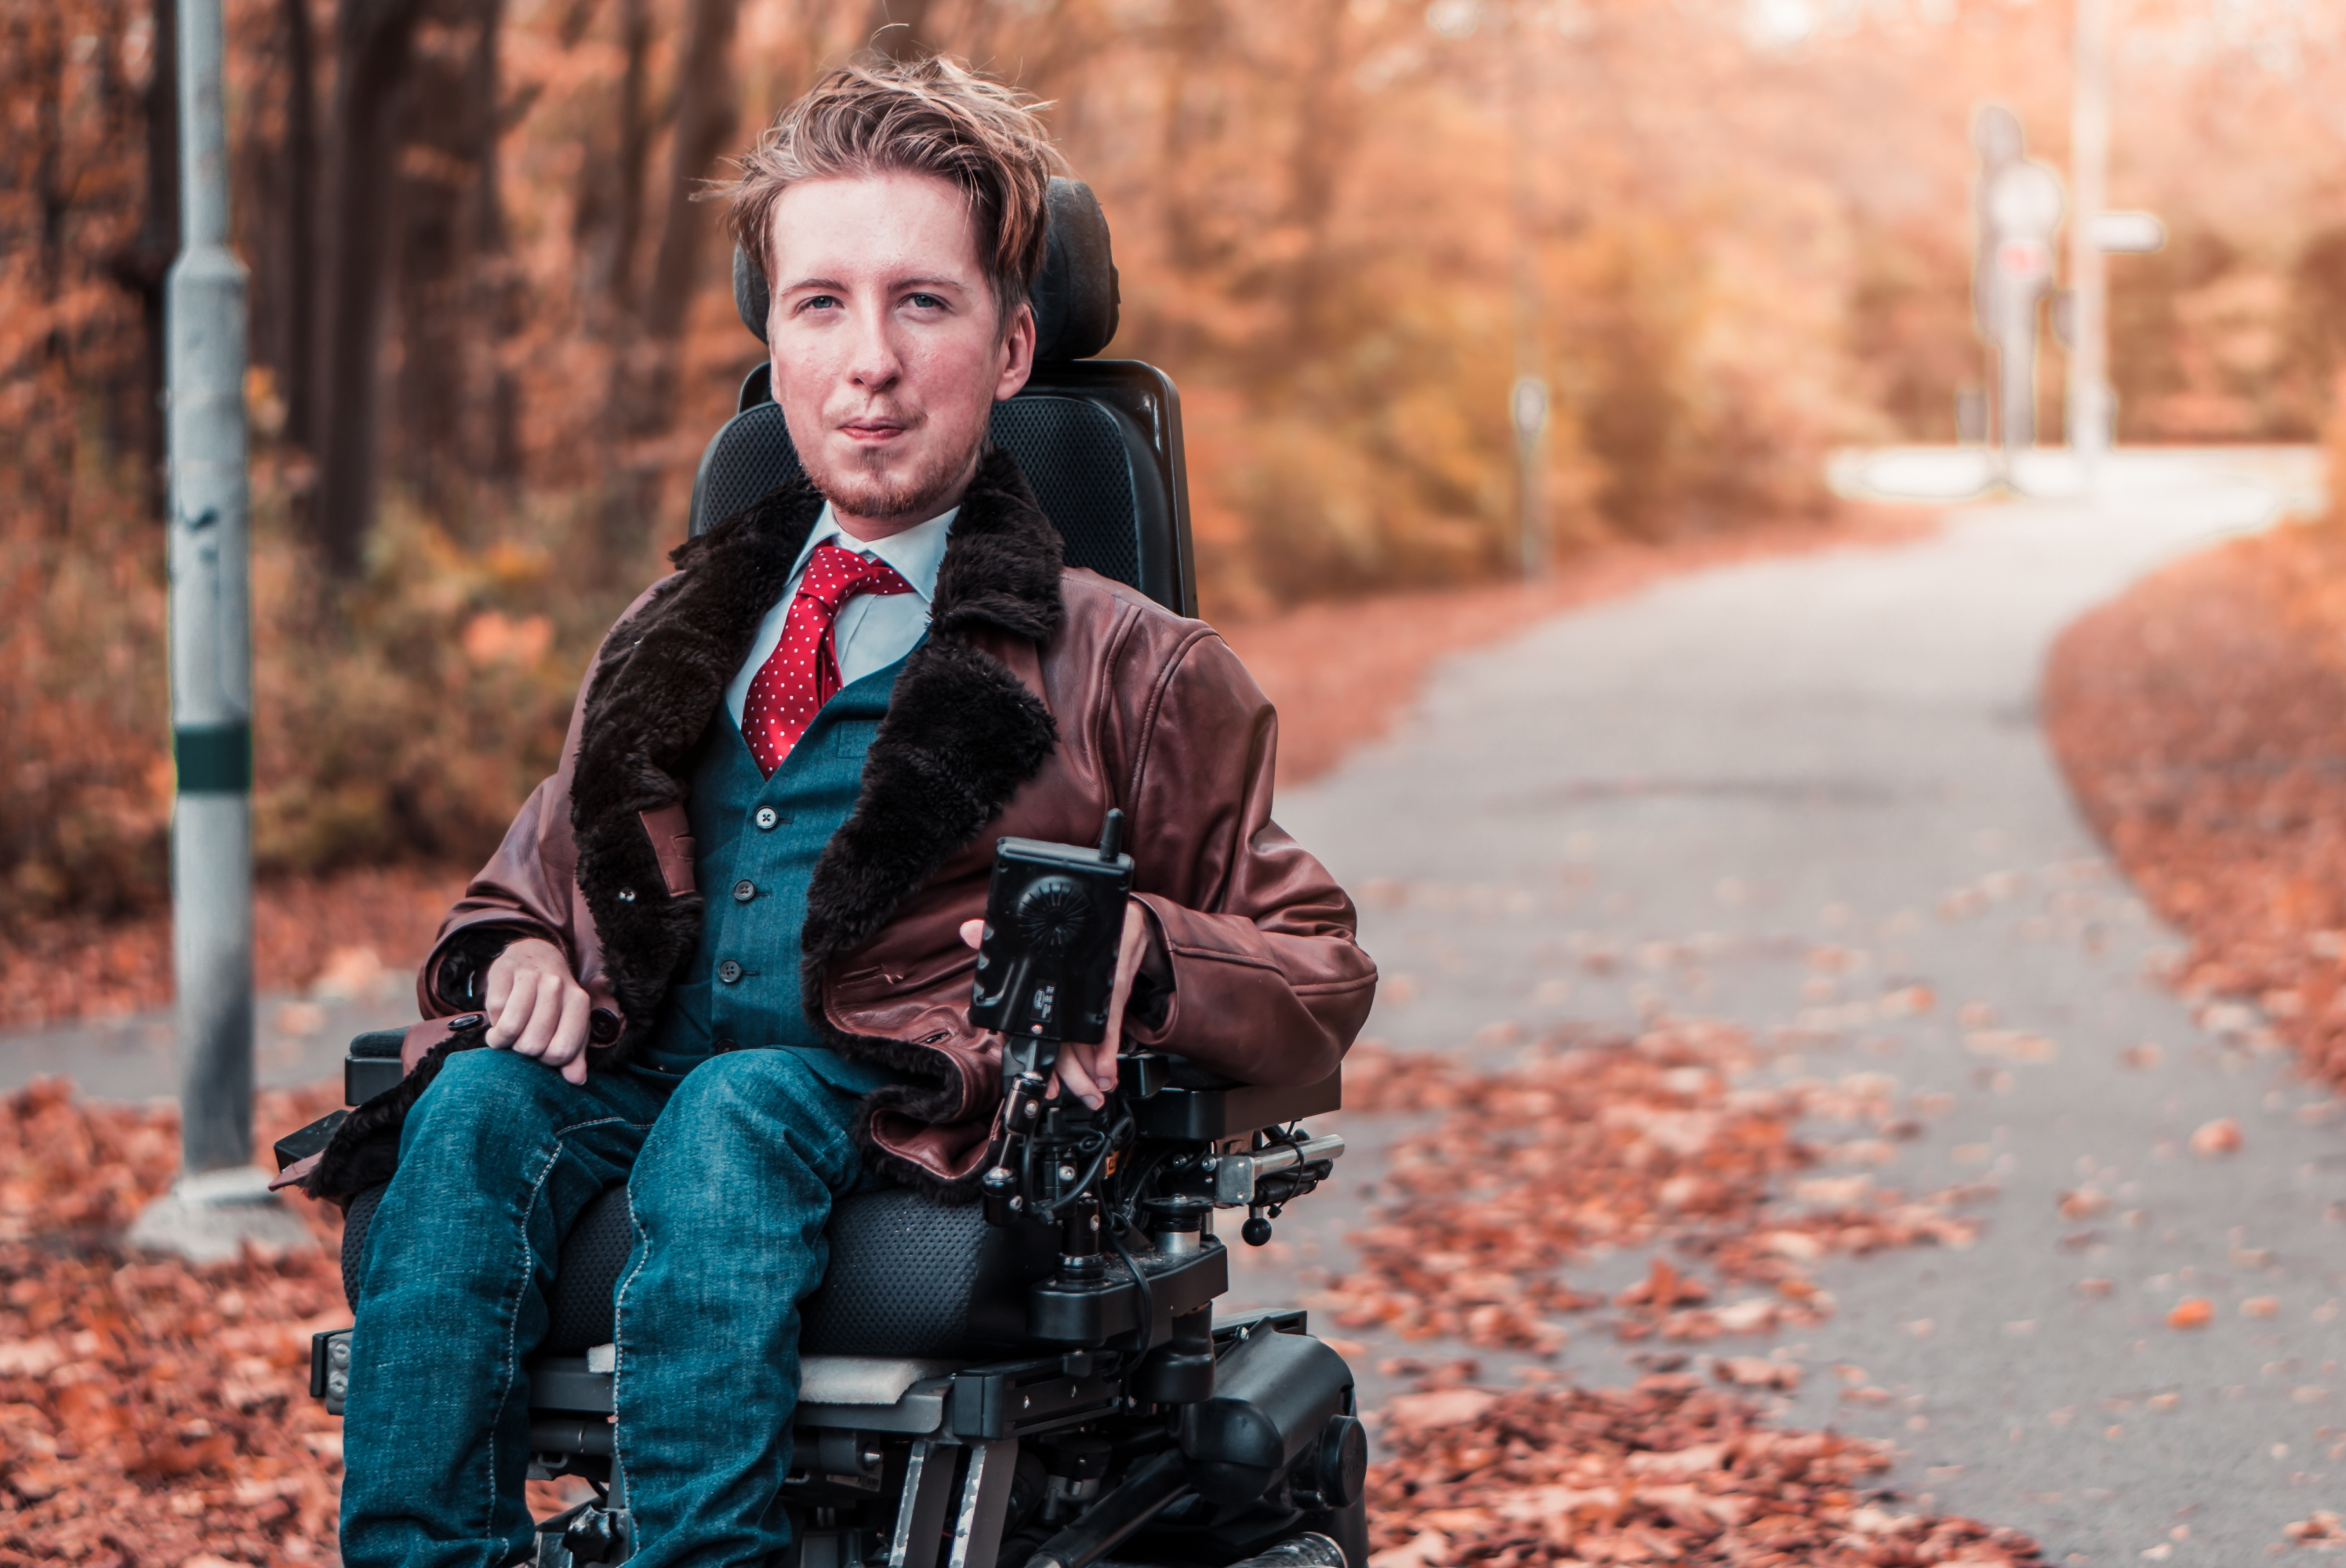 LIFE AND DISABLED FASHION